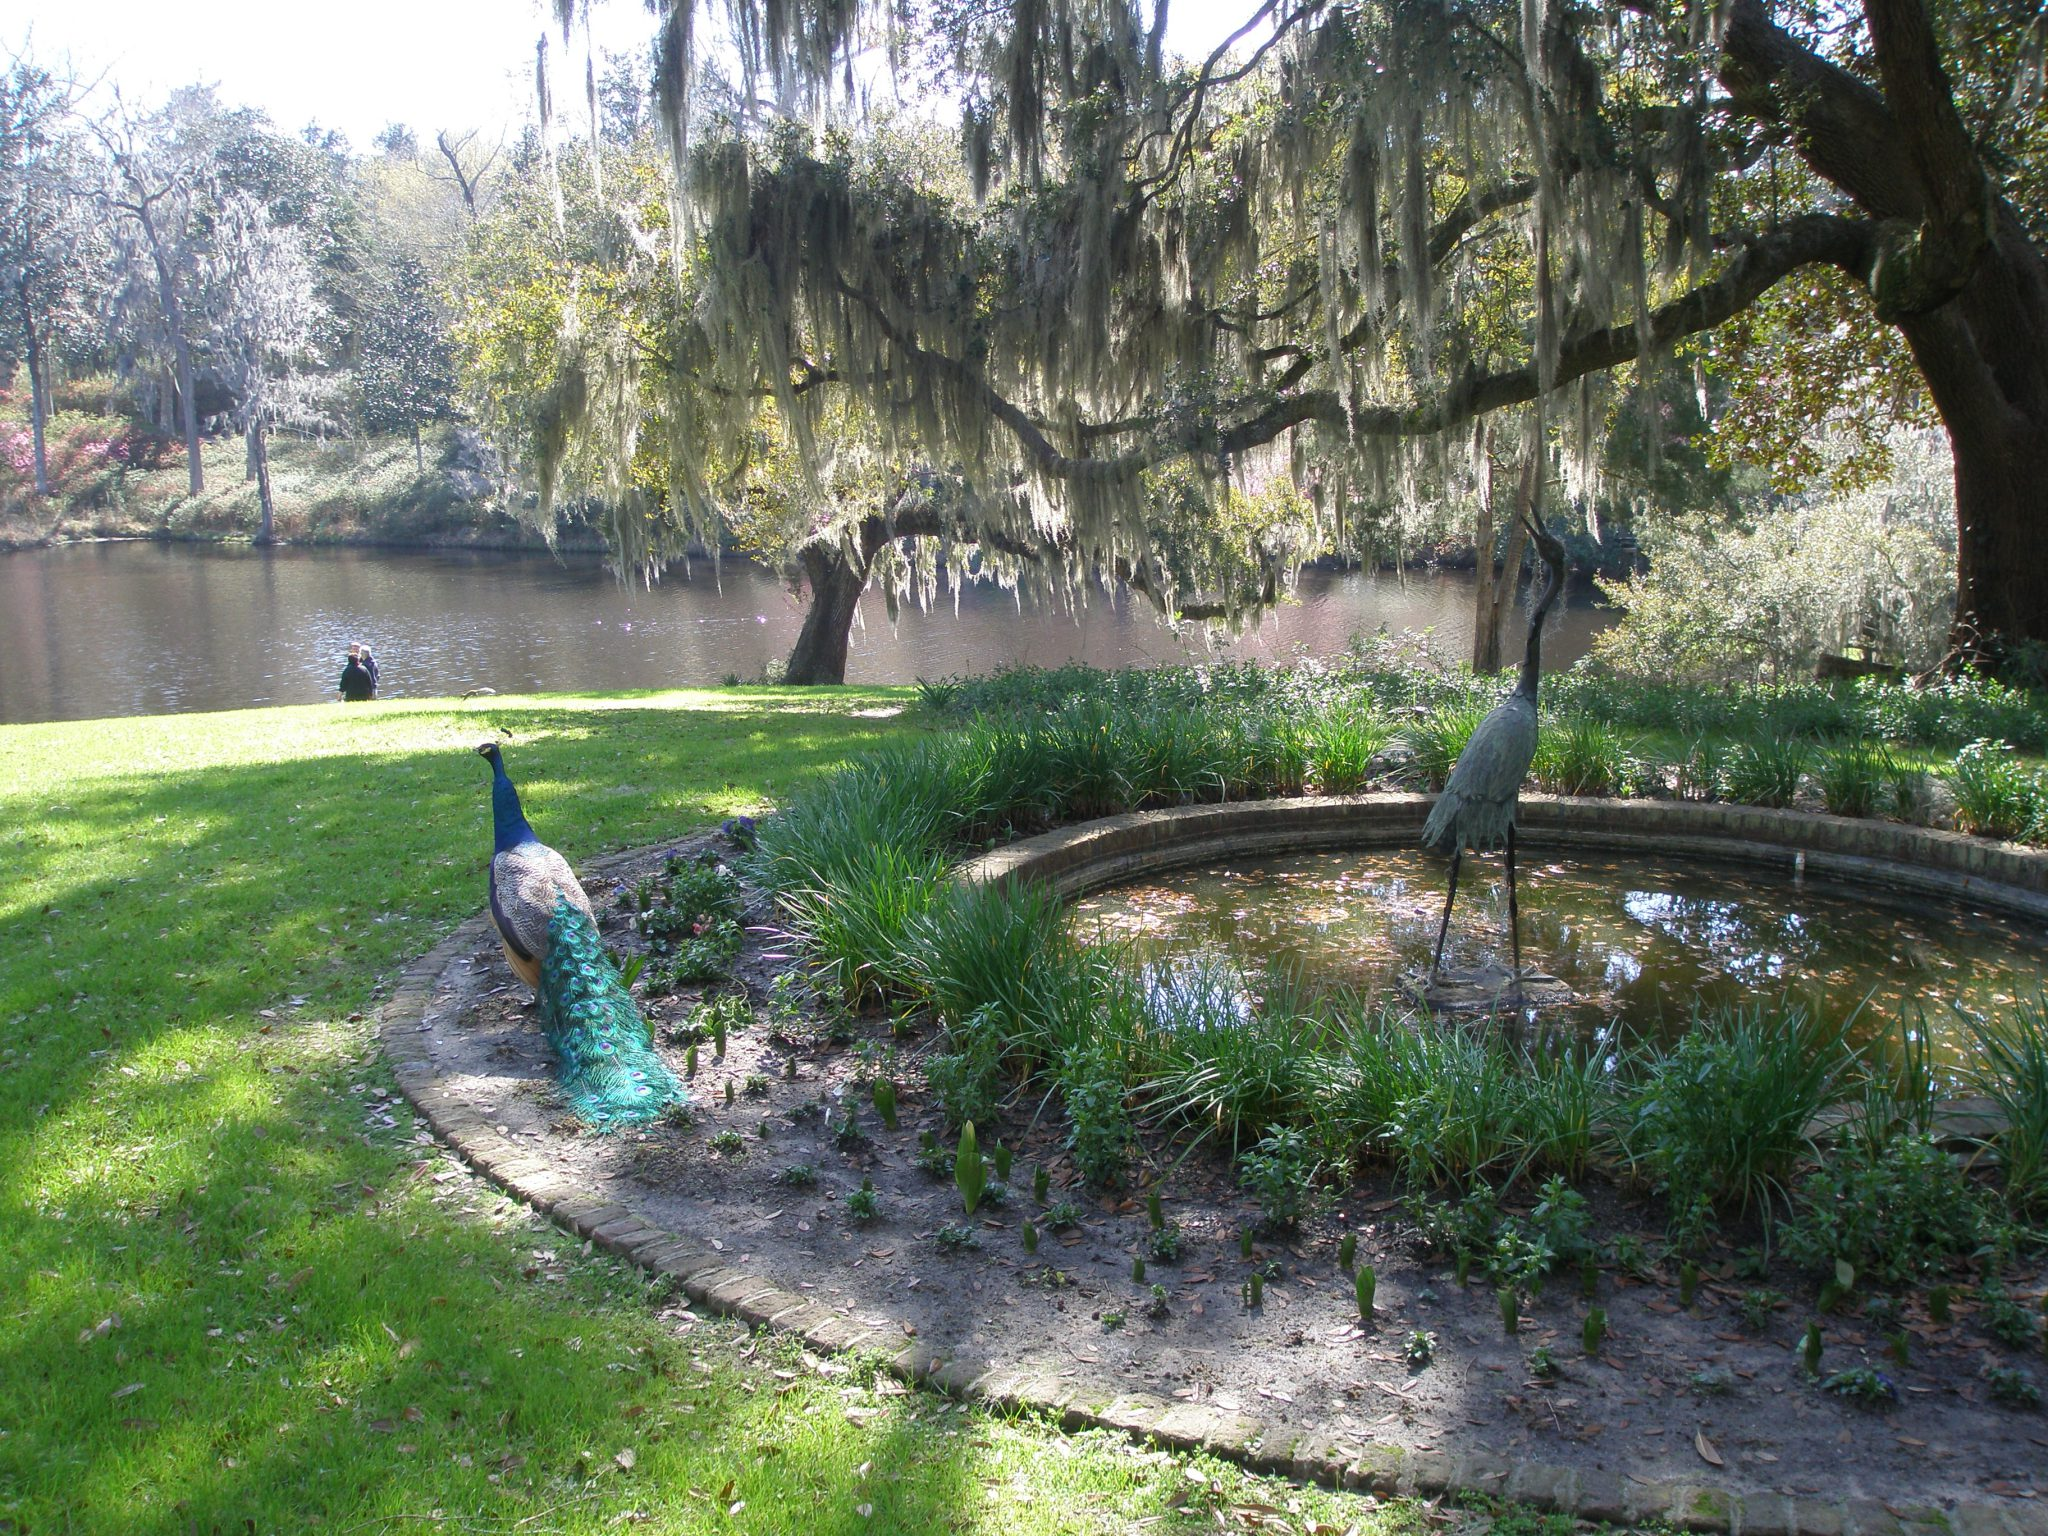 The Peacock Pool (featuring persnickety peacocks...along with a placid, antique bronze crane) with the Mill Pond in the background.